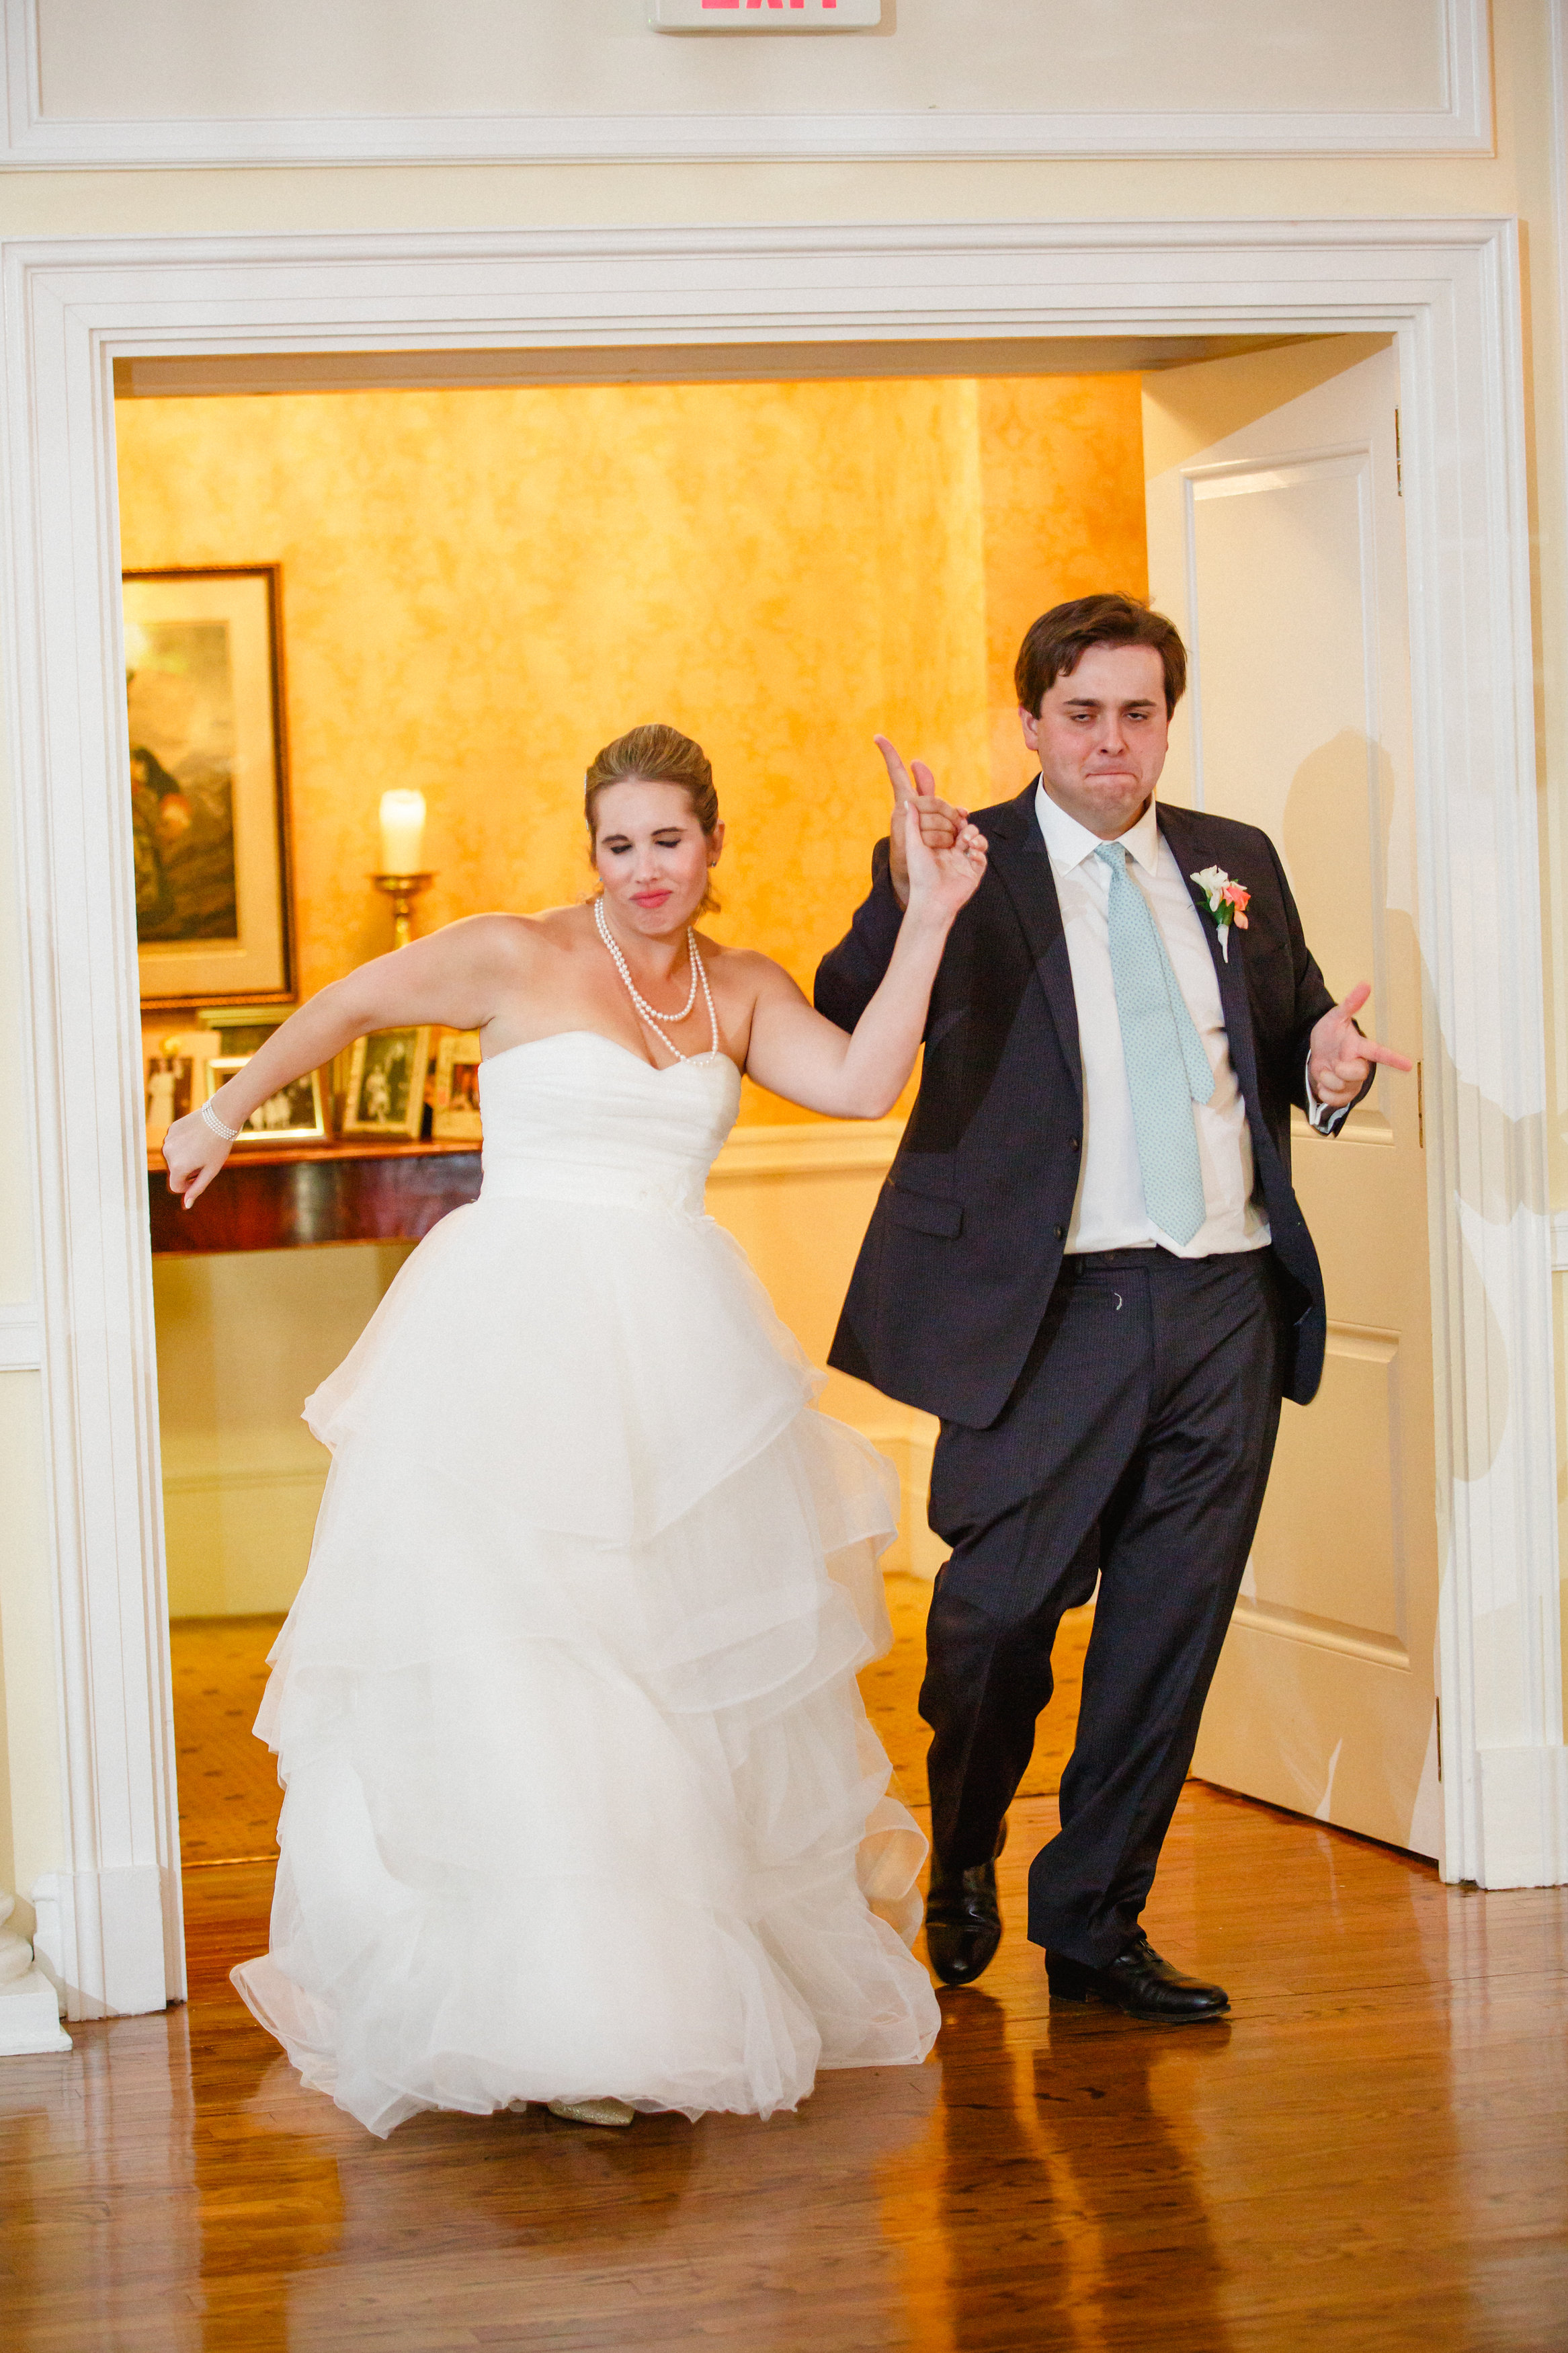 Vness-Photography-Chevy-Chase-Country-Club-A&R-Wedding-539.jpg